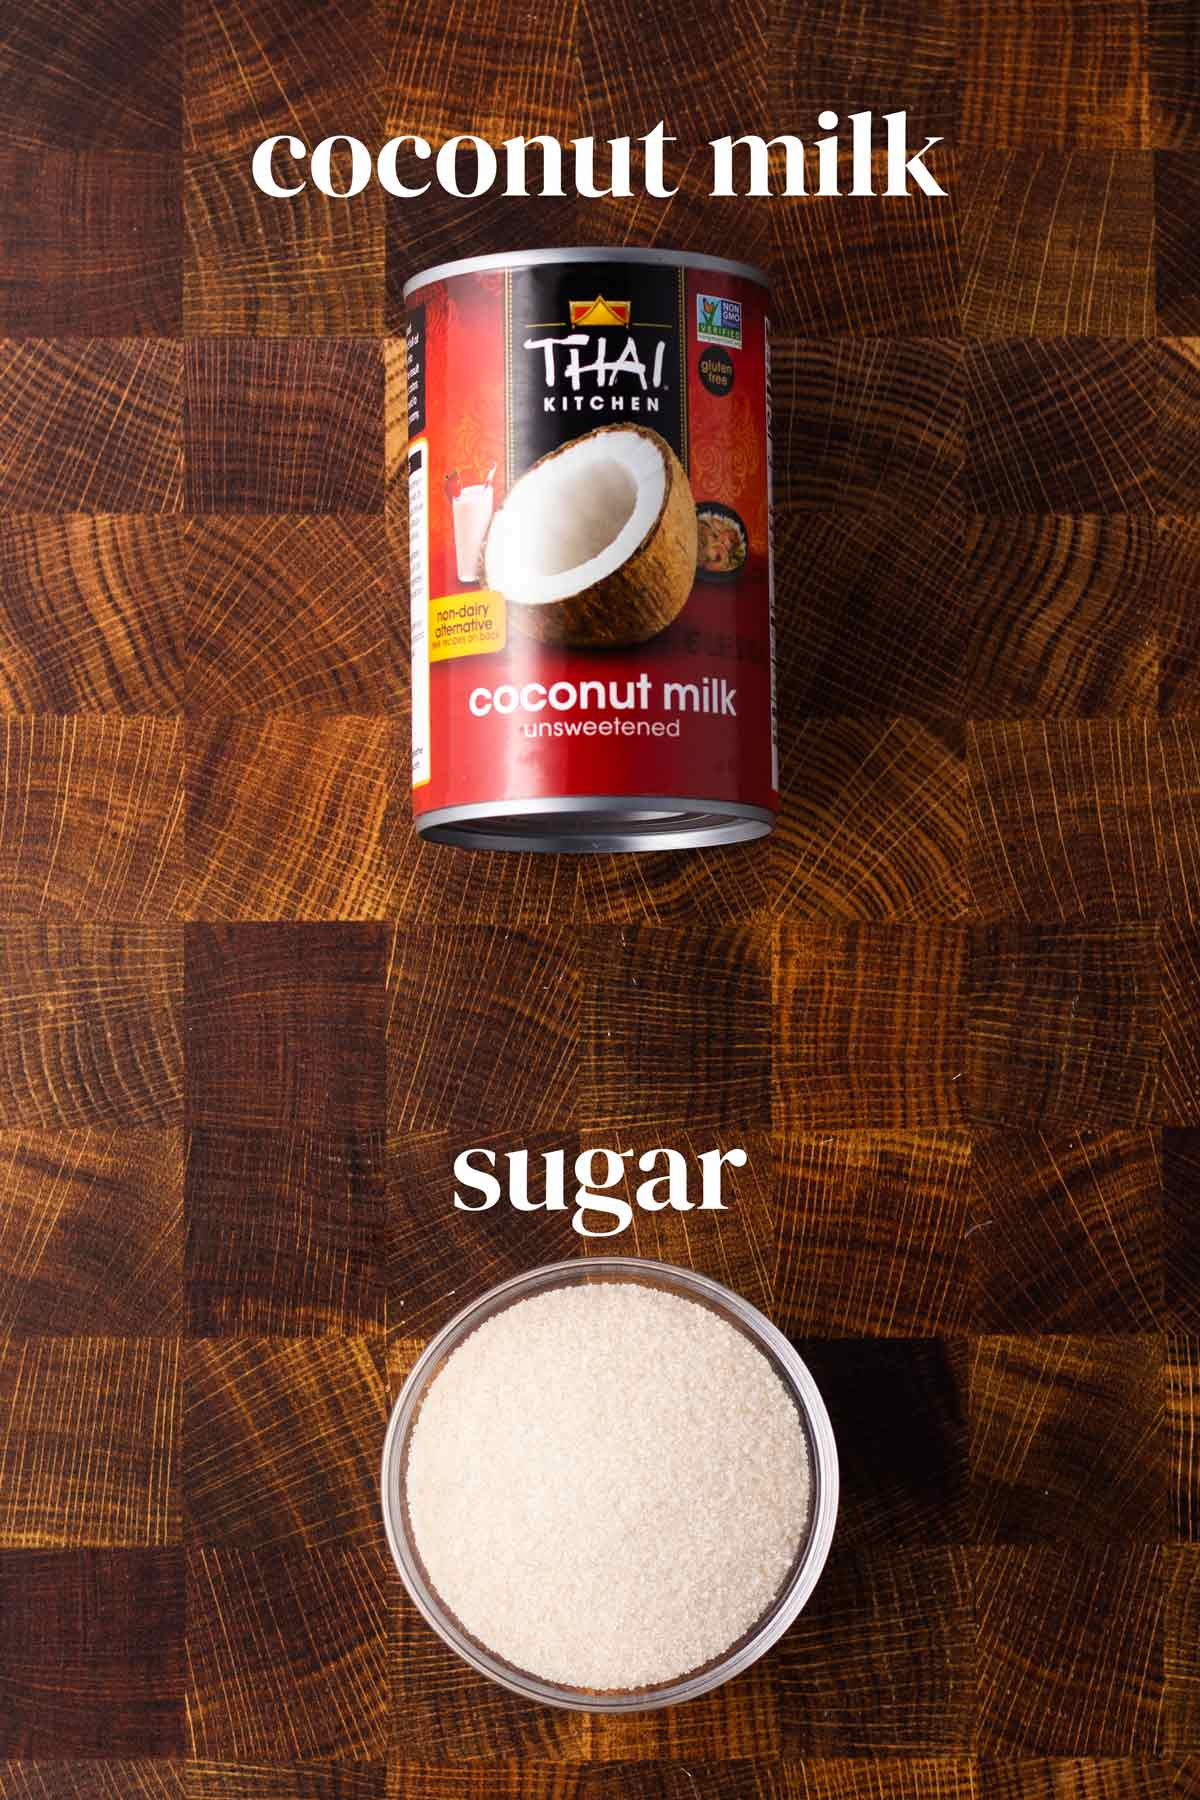 A can of full-fat coconut milk and sugar.